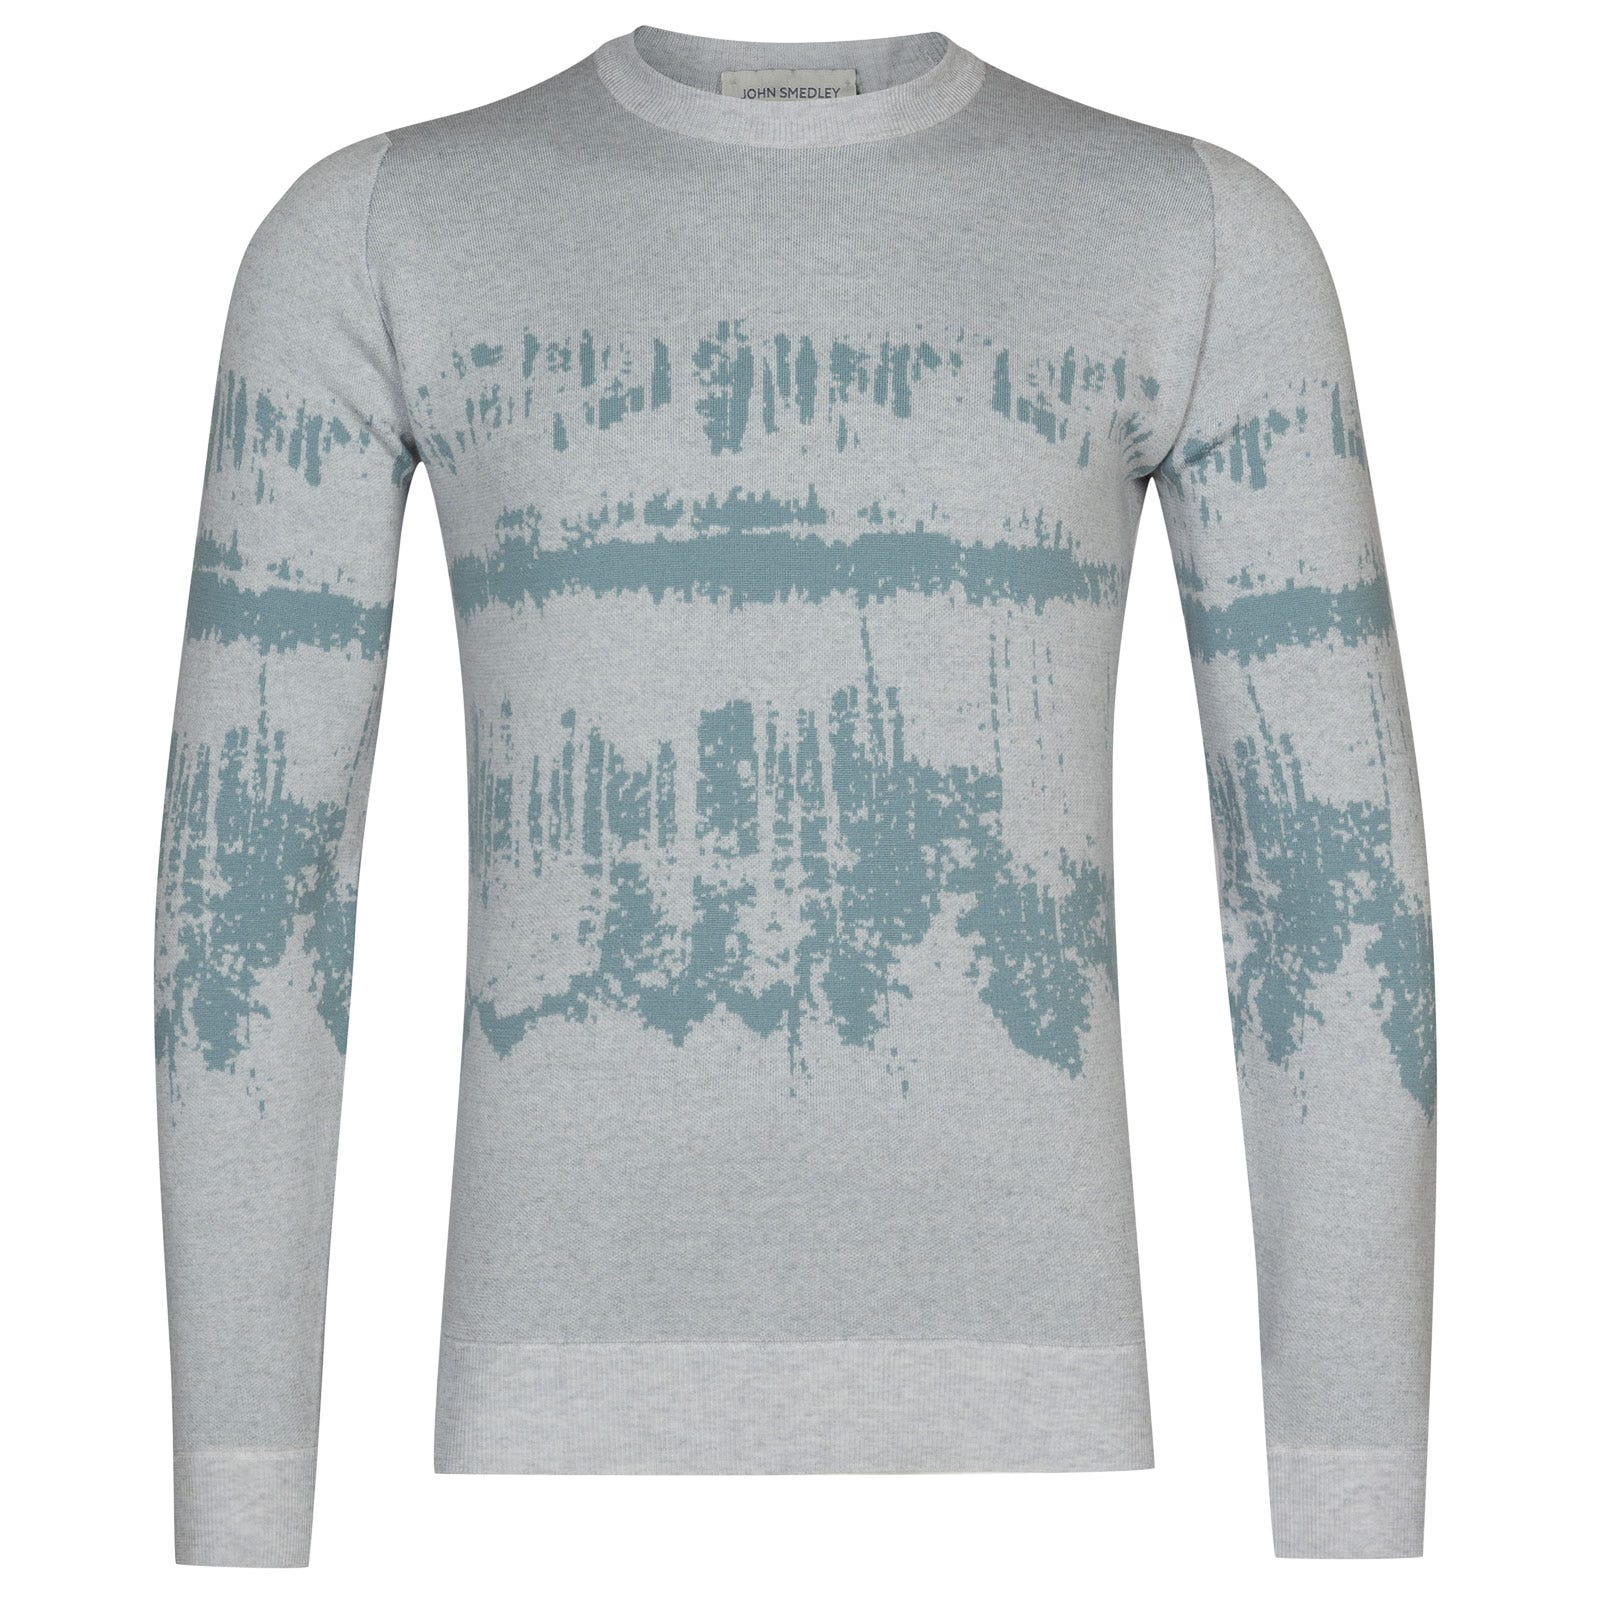 John Smedley girling Merino Wool Pullover in Bardot Grey/Summit Blue-M